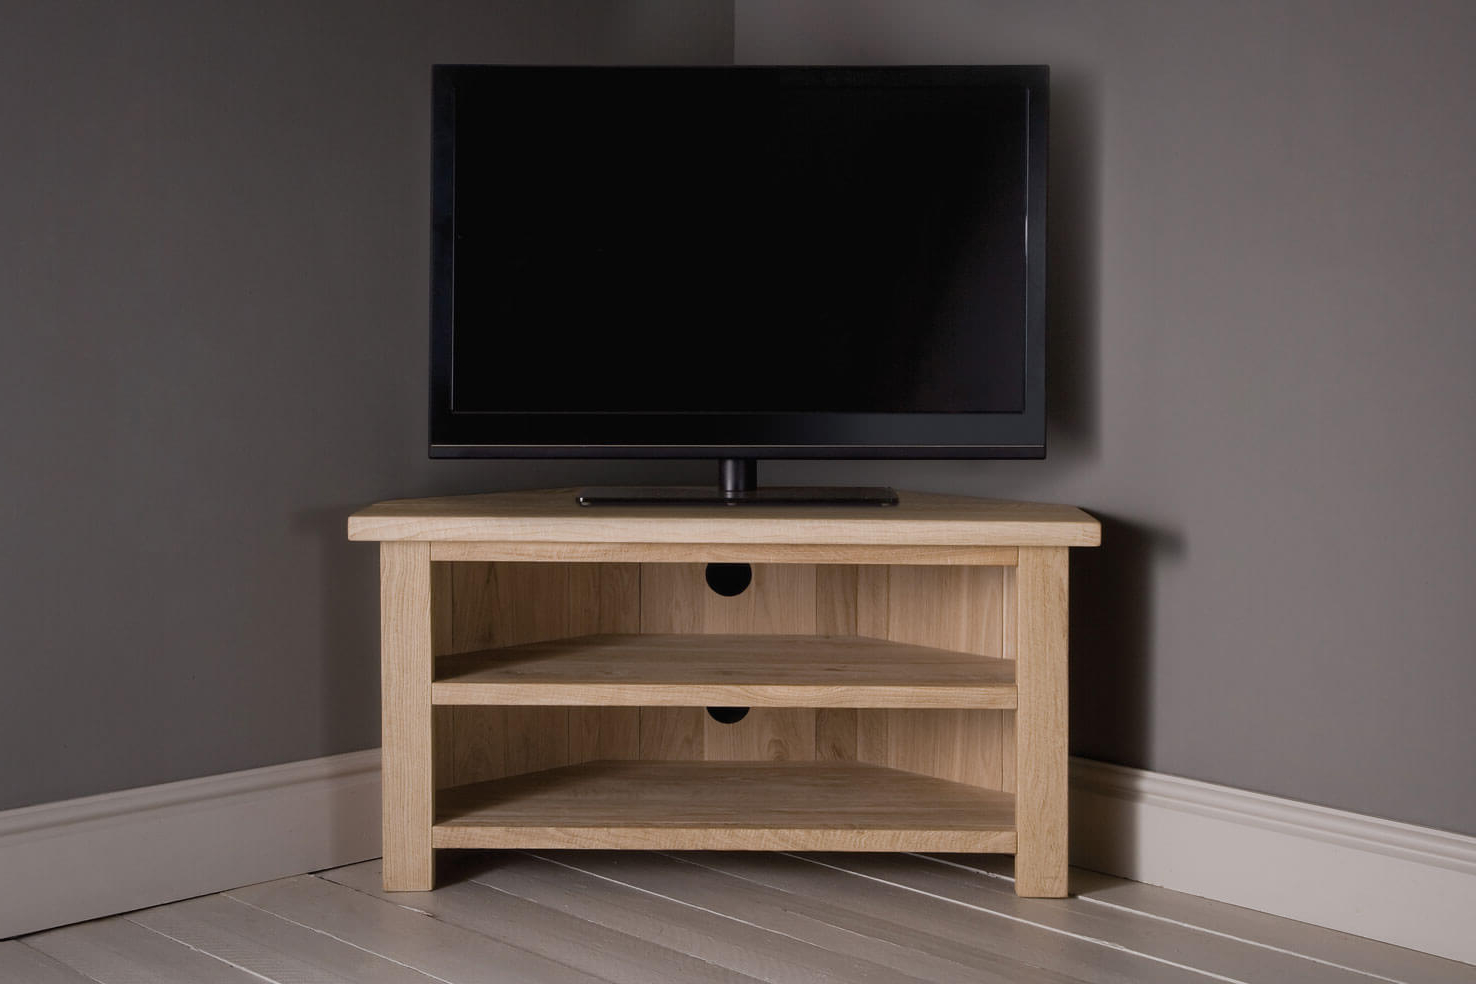 Corner Wooden Tv Cabinets In Recent Oak Corner Tv Unit With Shelfindigo Furniture (View 16 of 20)